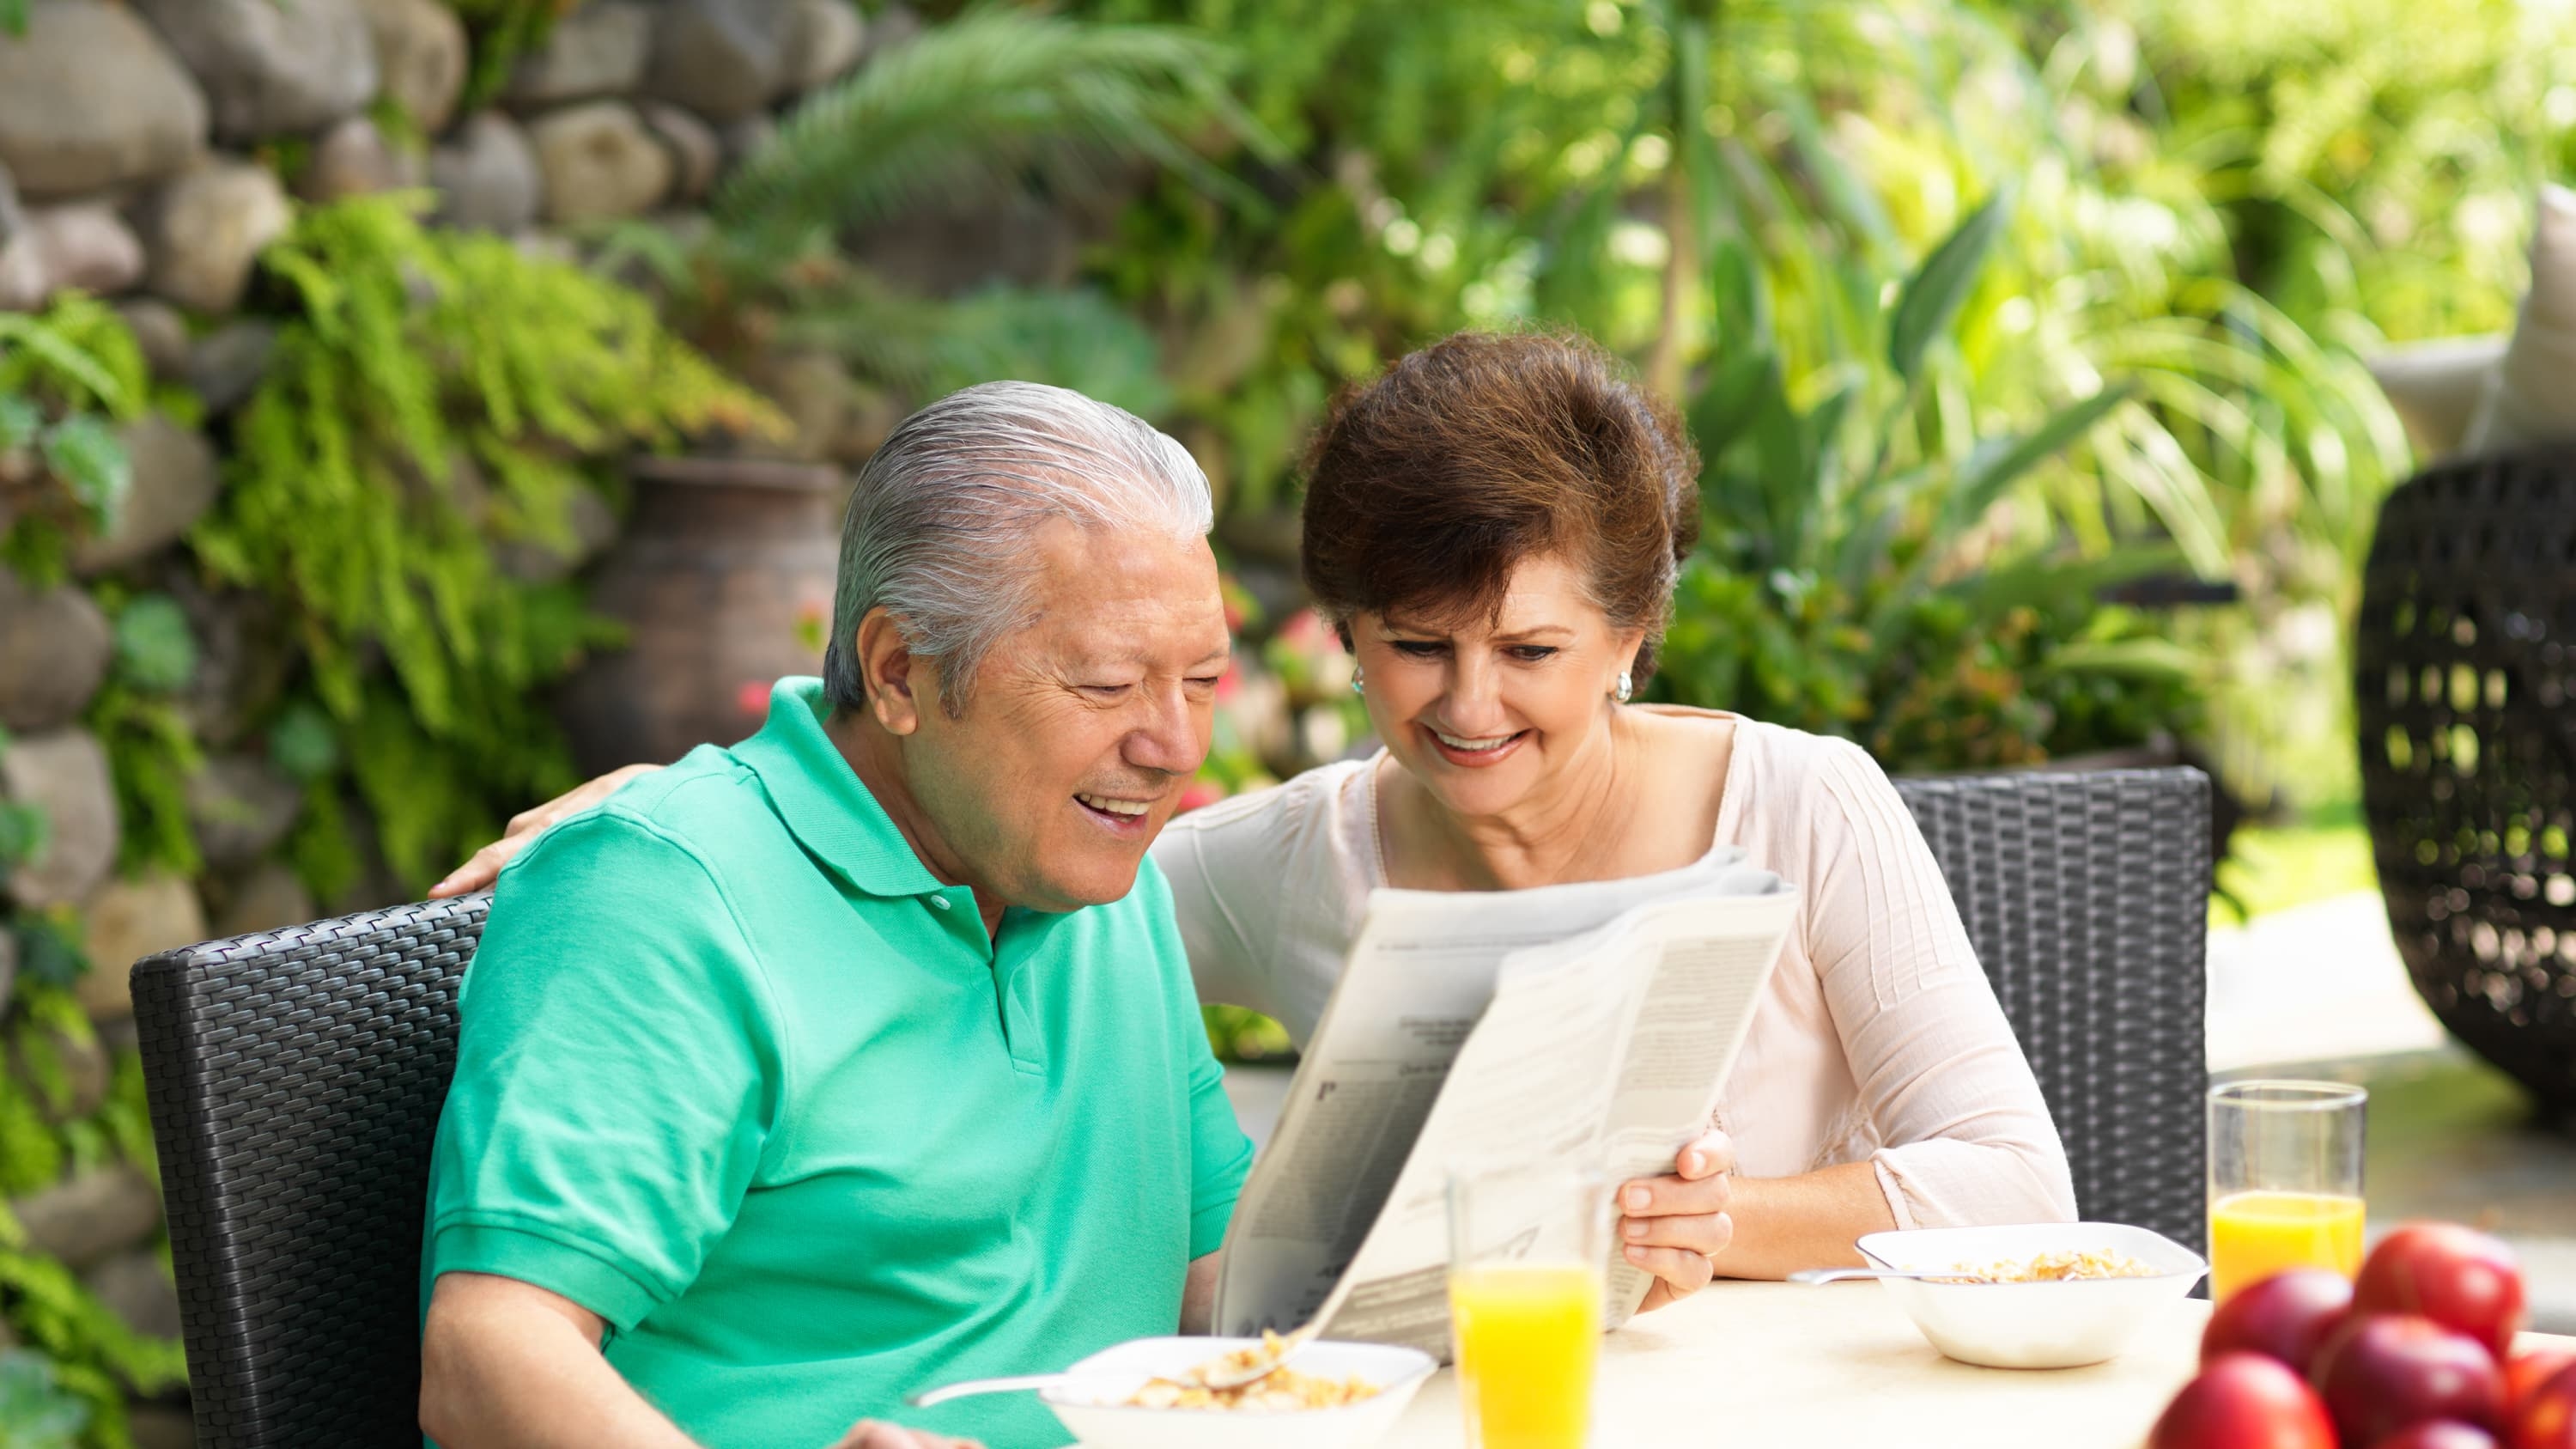 Senior couple reading newspaper while eating breakfast. Telomere research may uncover the secrets to living longer.